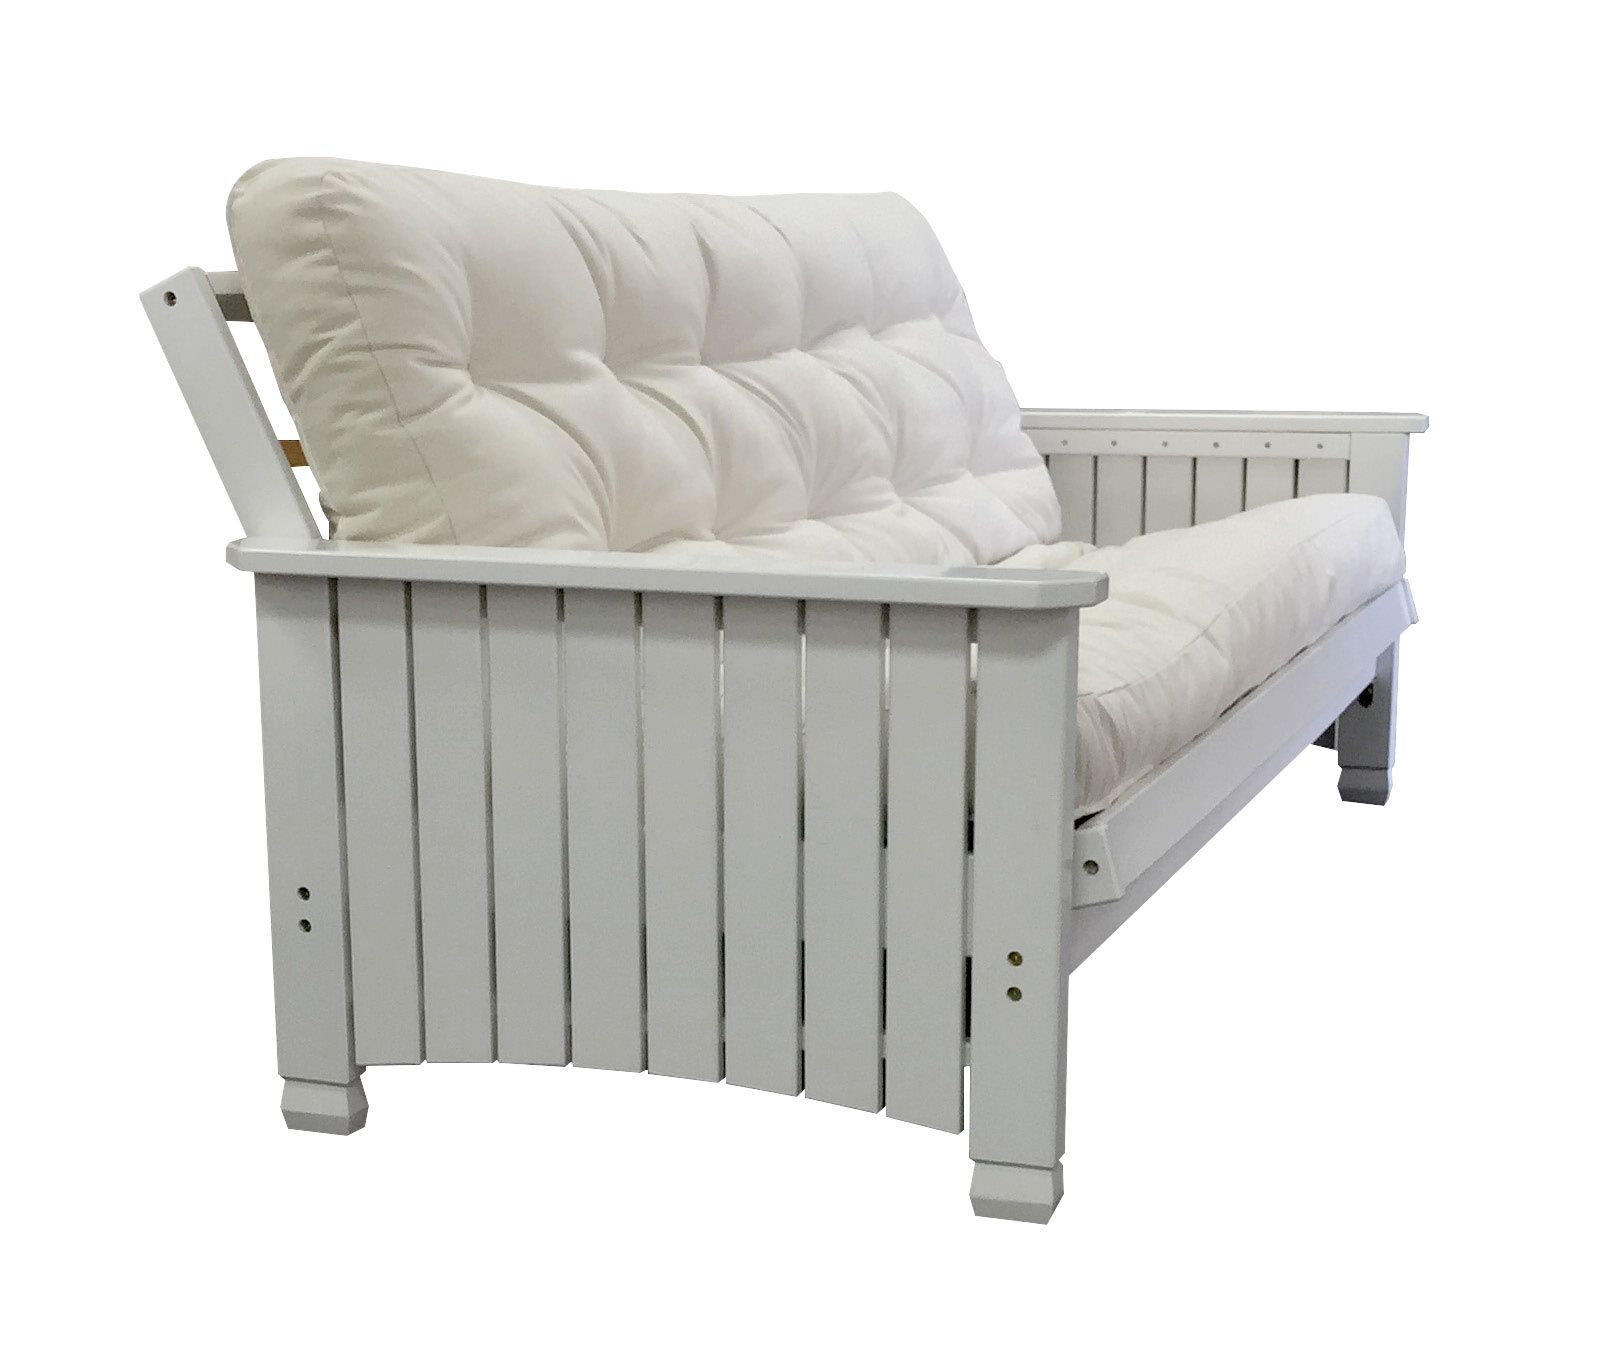 size bed heavy unique amazon drawers storage duty hardwood futon bunk white armless queen futons arden with sofa of frame awesome solid